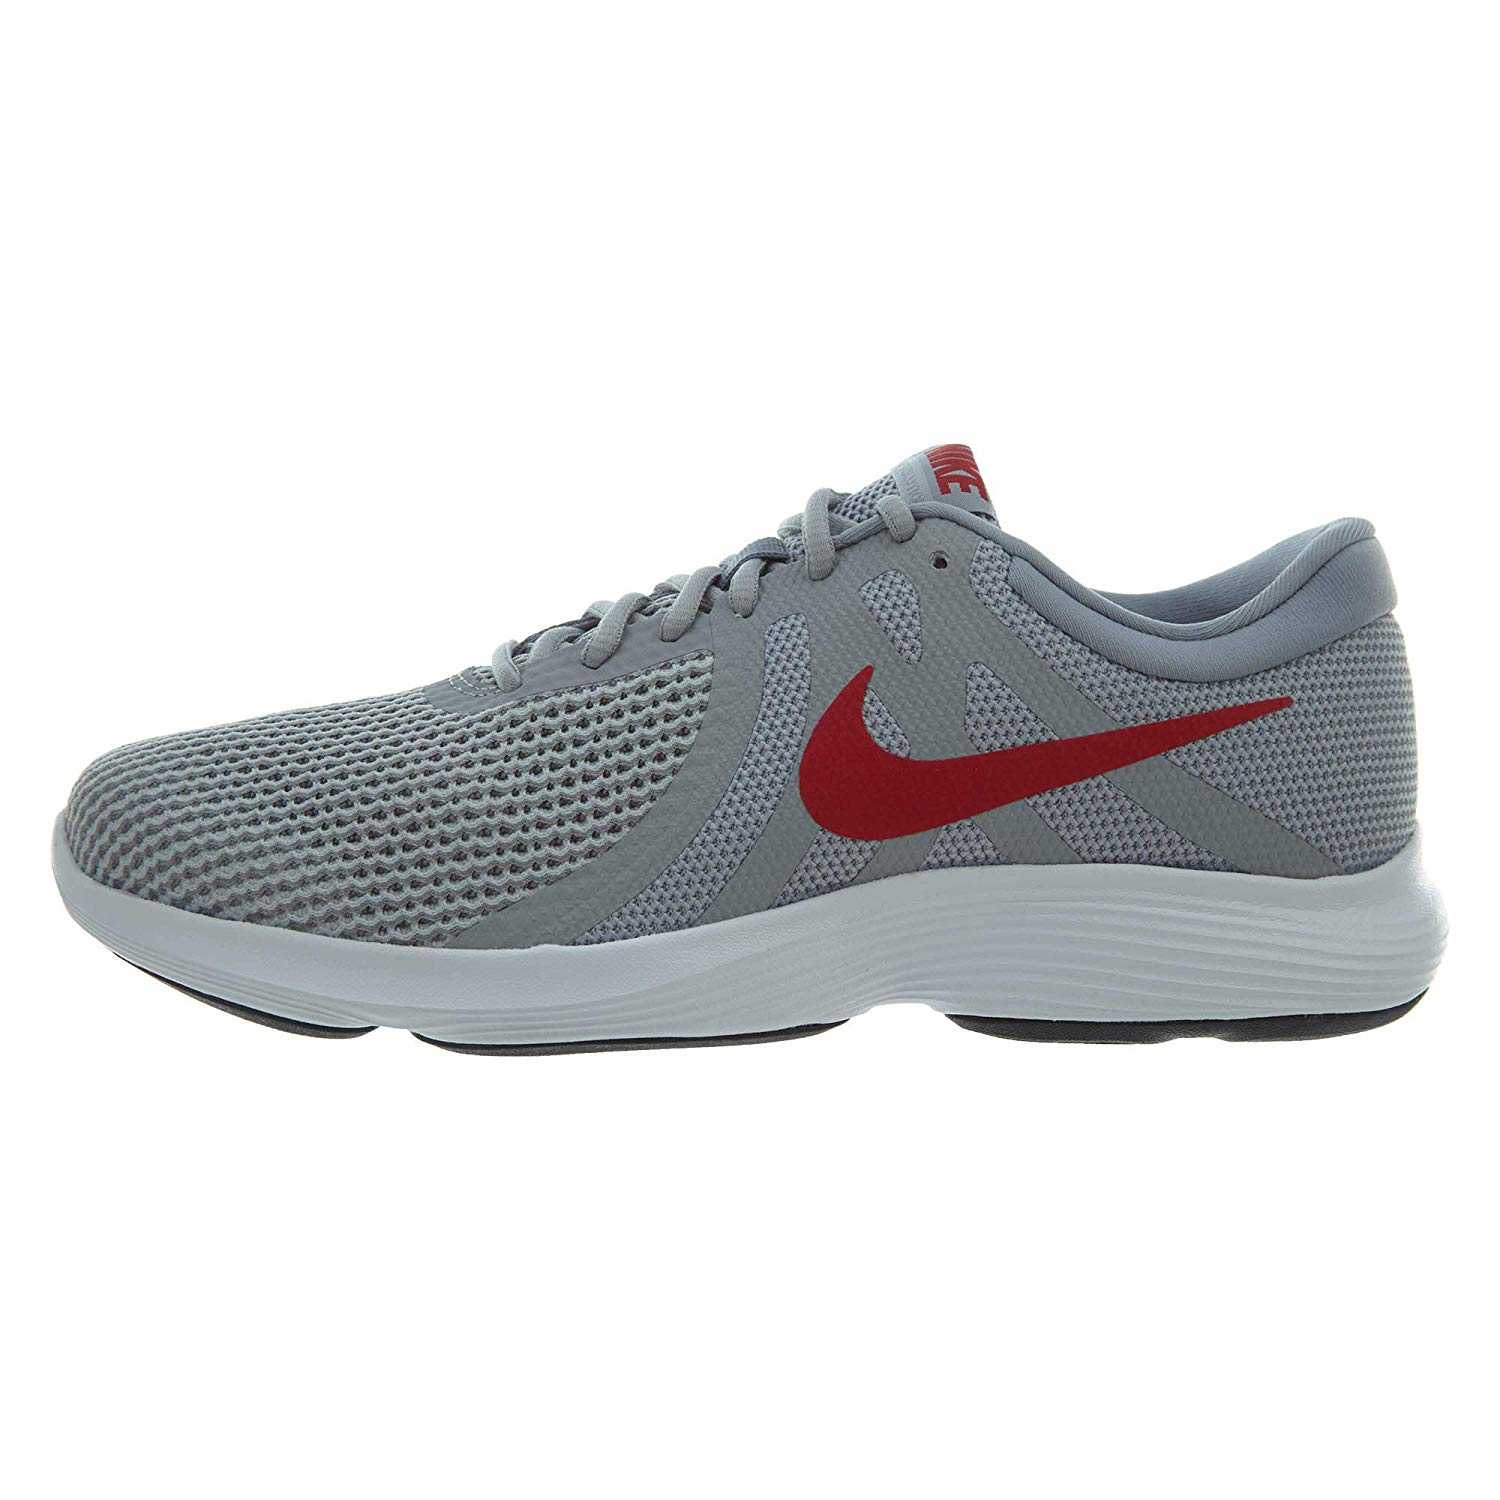 80eabcf08c4b Nike Mens Revolution 4 Low Top Lace Up Trail Running Shoes